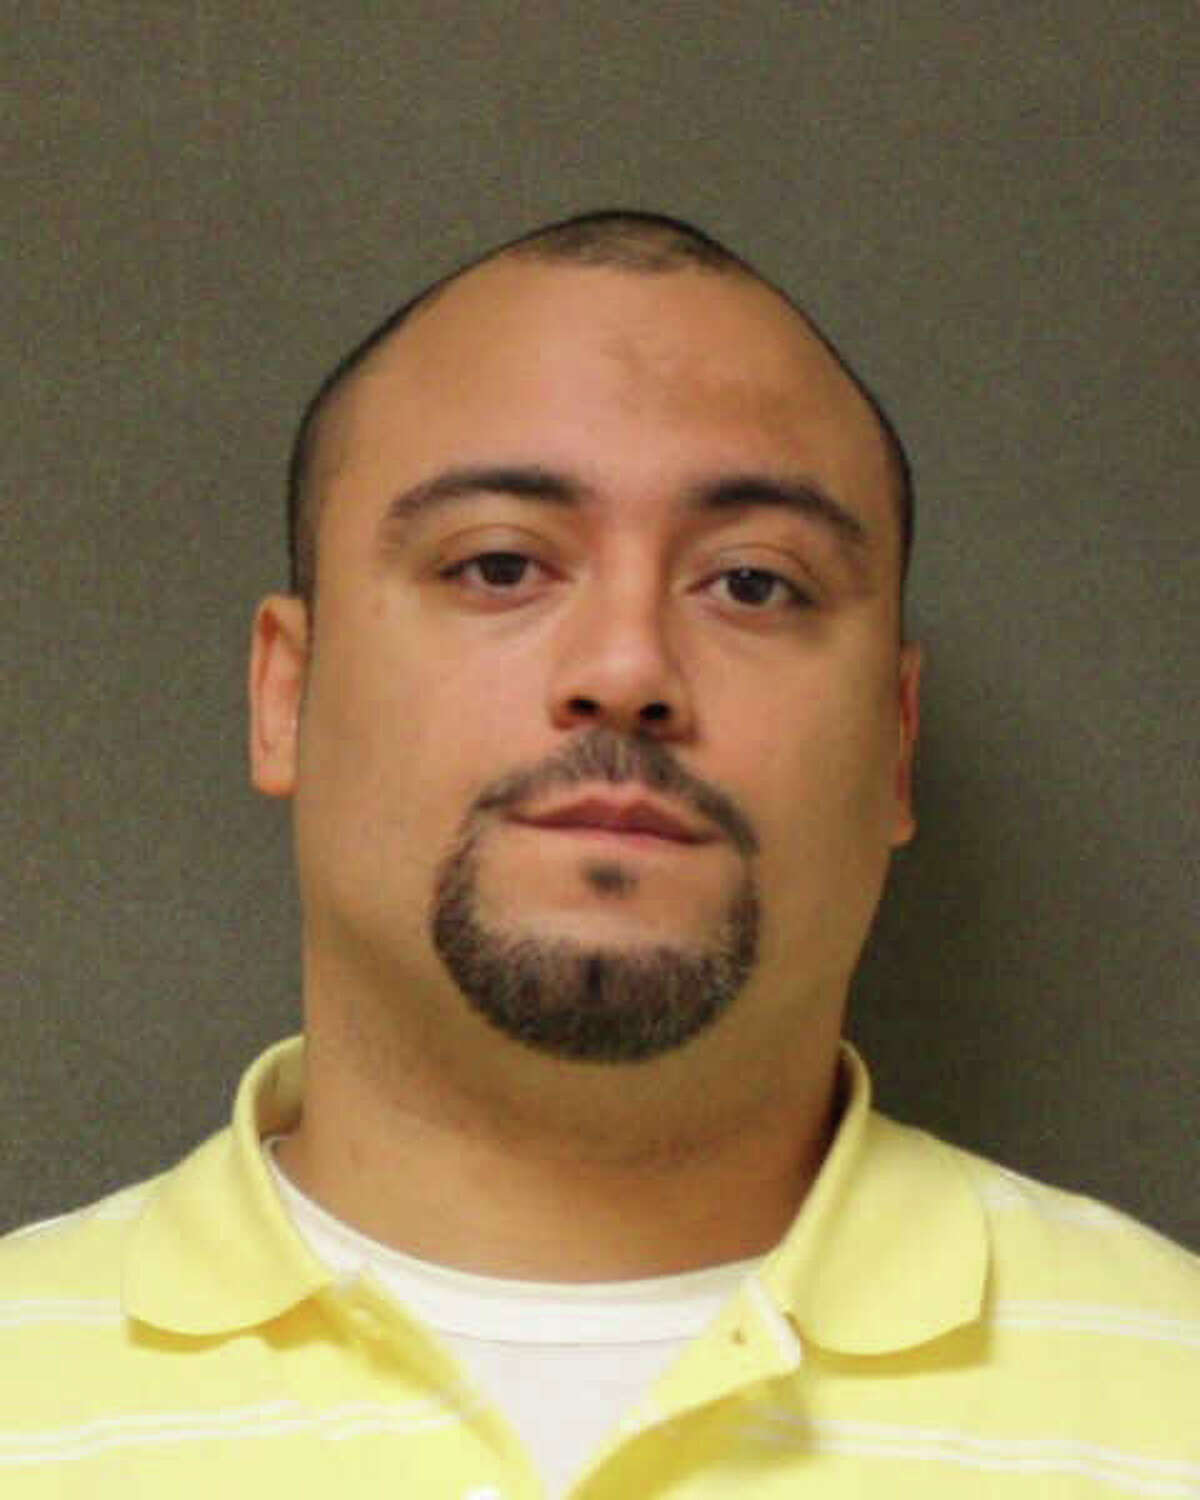 Angel Luis Santiago, 35, of West Haven, was charged with first-degree manslaughter, first-degree assault and risk of injury in connect with the death of 5-month-old Kyle Robinson, police said.